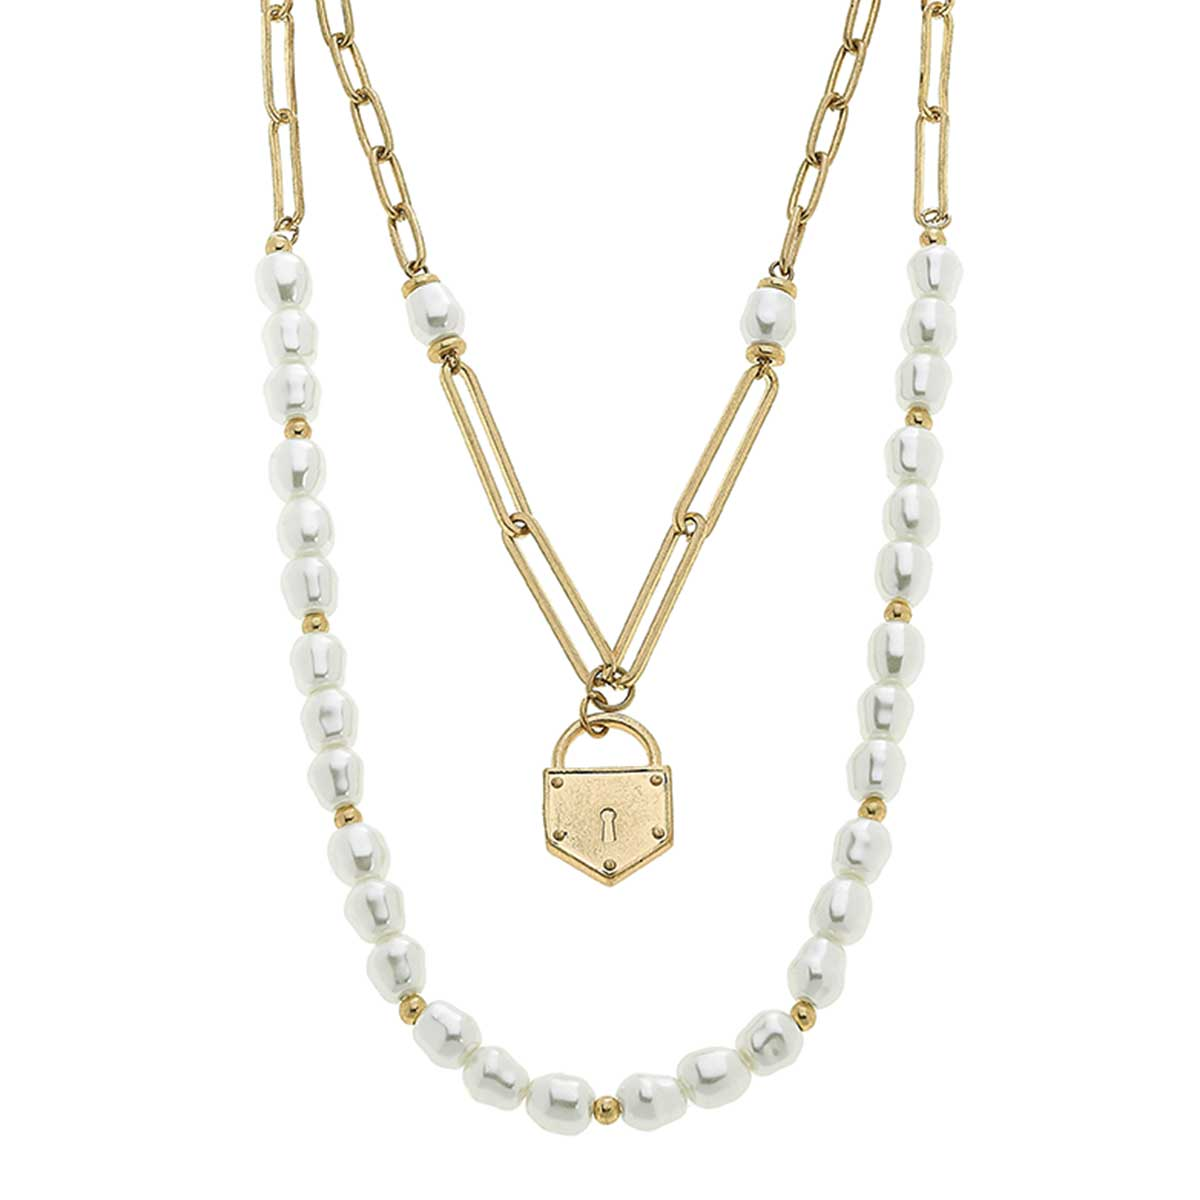 Kaiya Layered Pearls & Padlock Necklace in Worn Gold